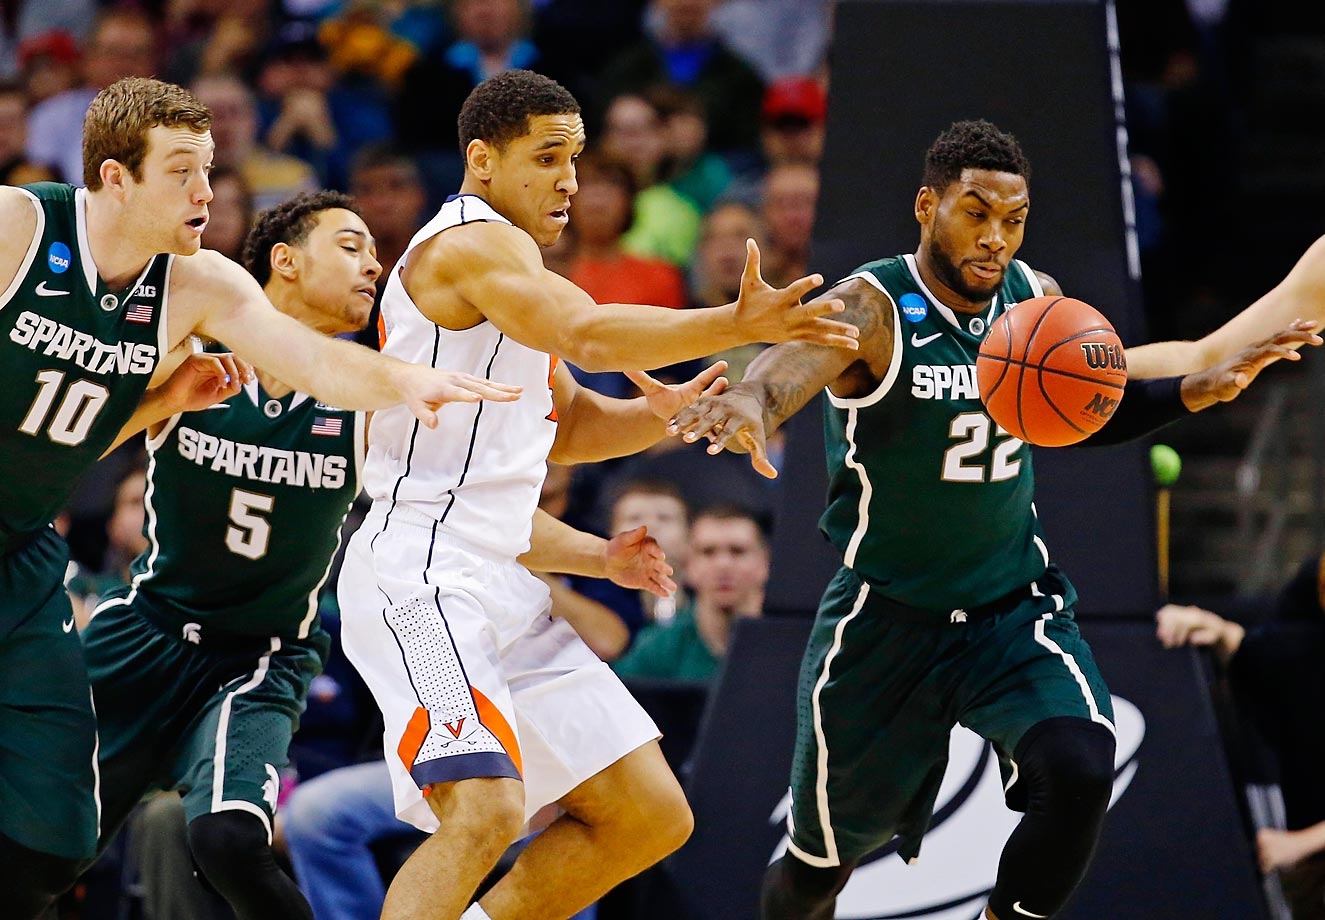 Malcolm Brogdon of Virginia is surrounded by Matt Costello, Bryn Forbes and Branden Dawson of Michigan State.